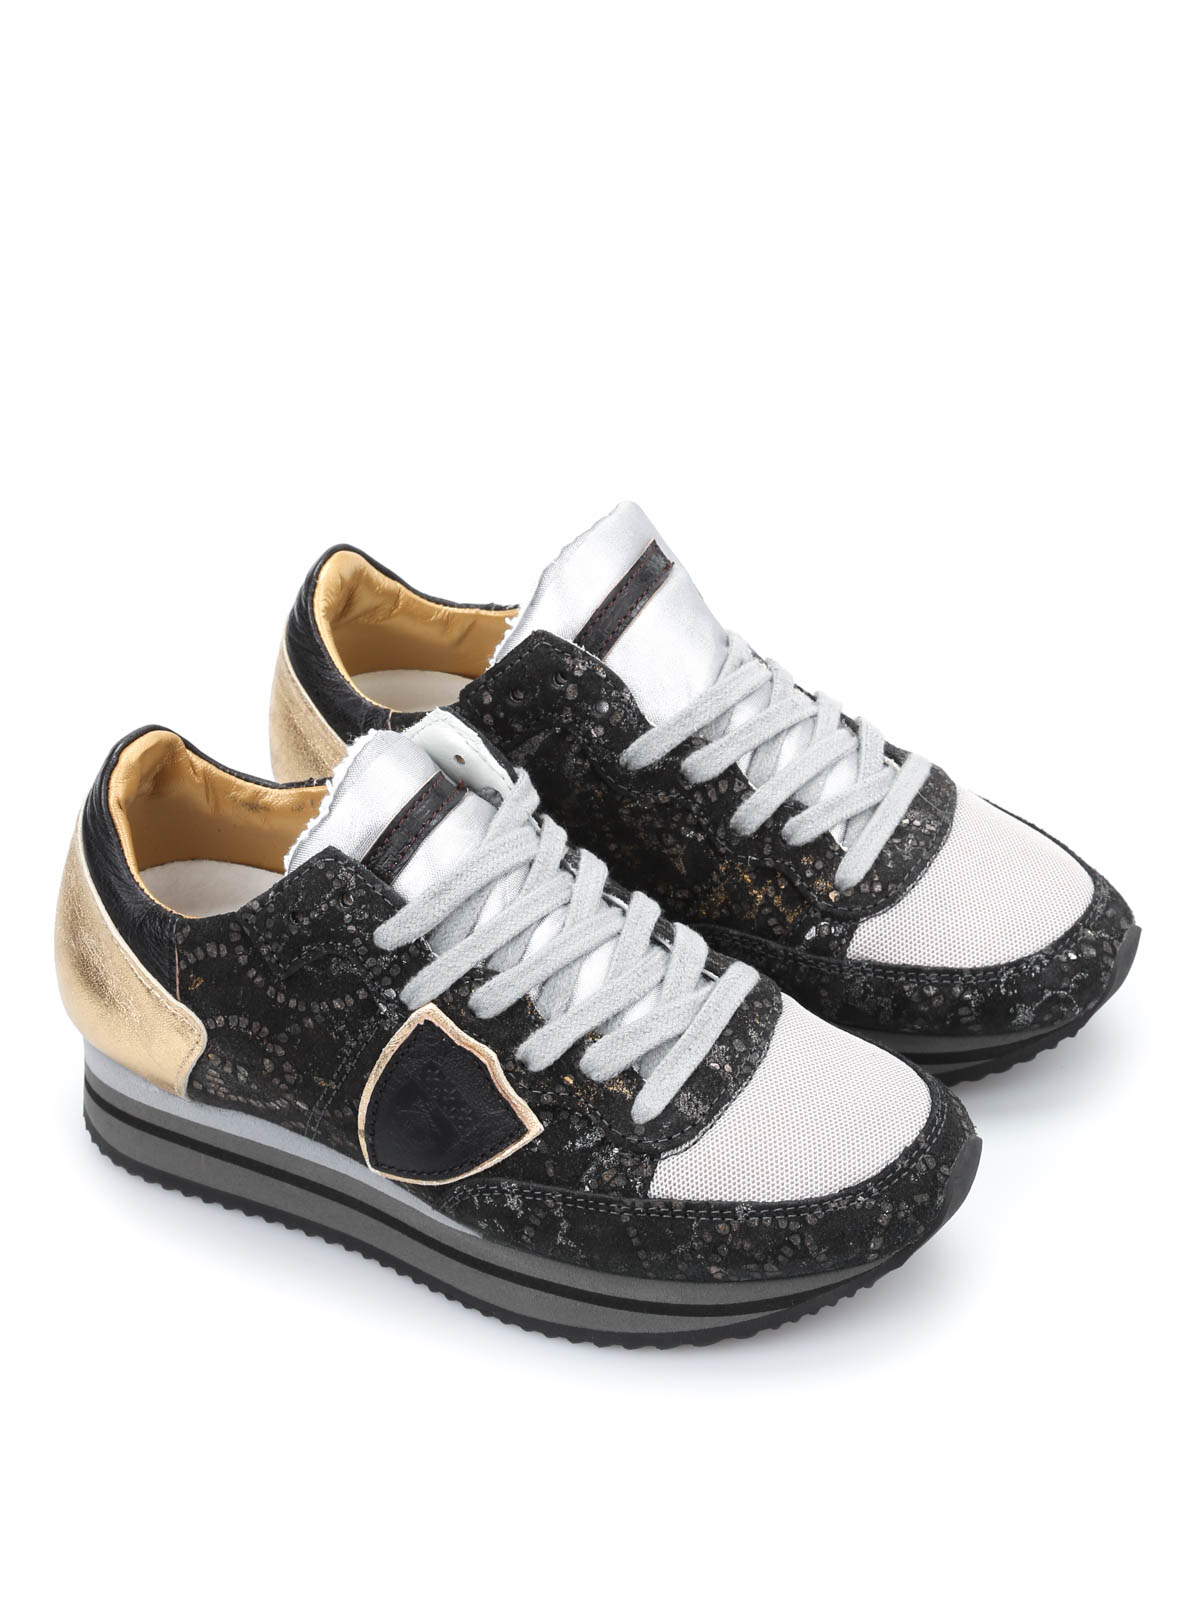 philippe model low top tropez sneakers with wedge trainers thld pp01 36. Black Bedroom Furniture Sets. Home Design Ideas